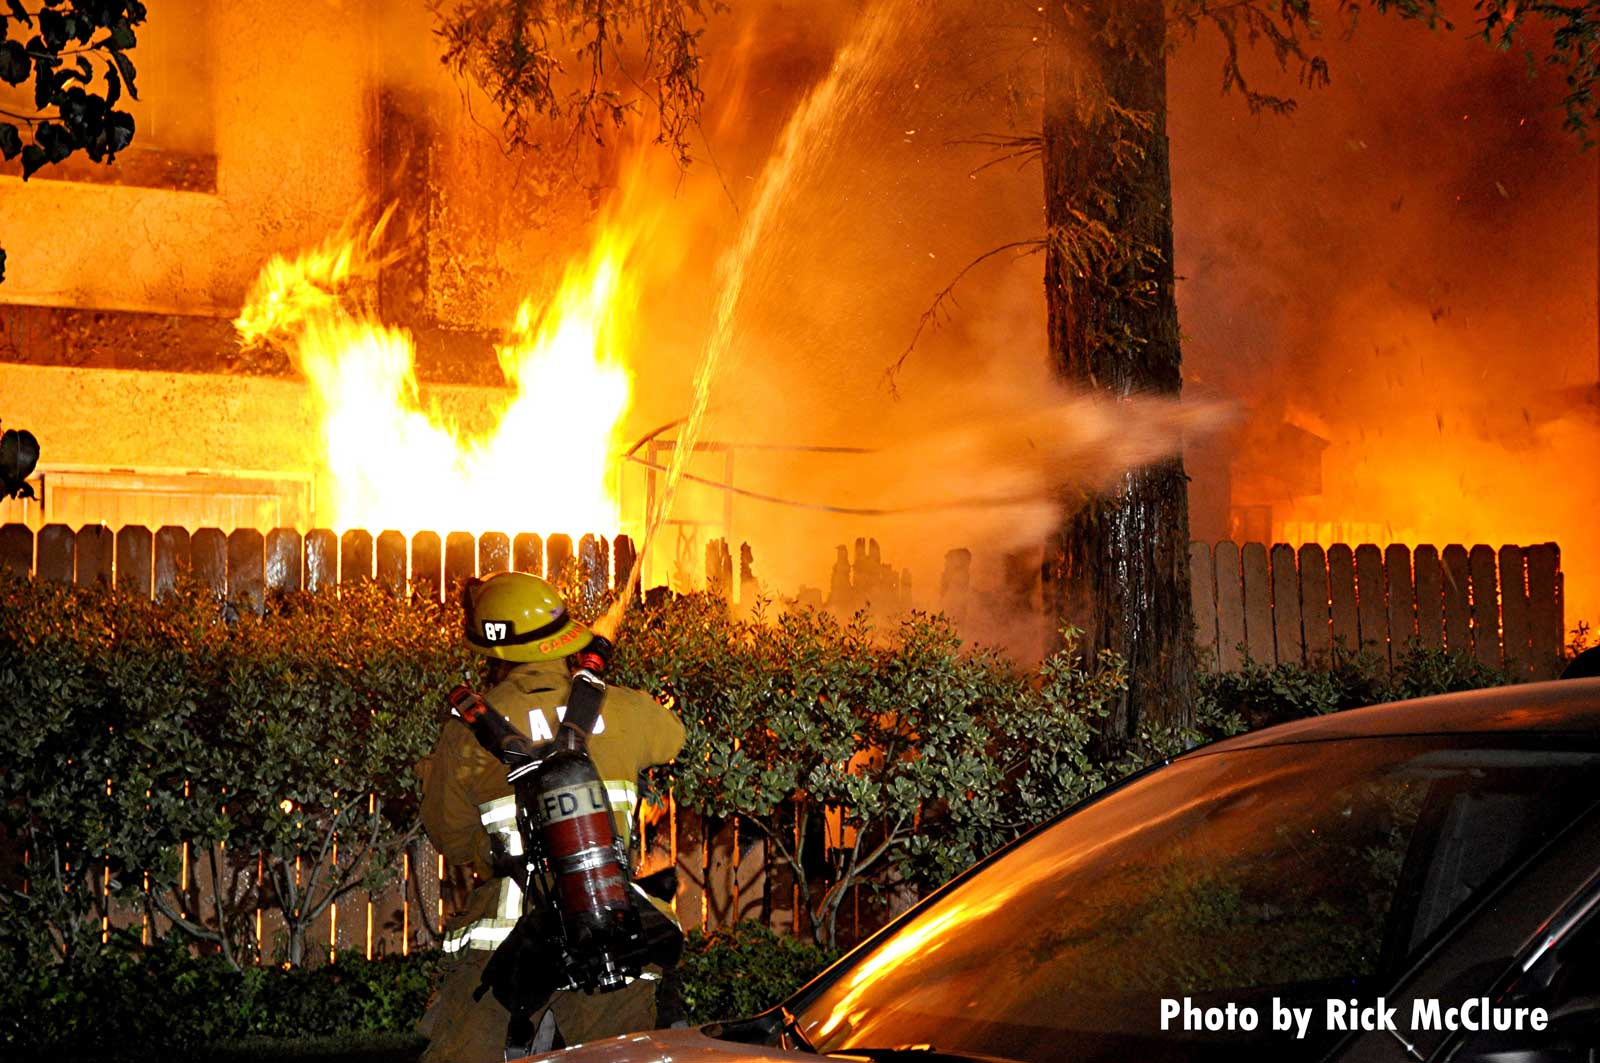 Firefighter with a hose as flames burn in the background